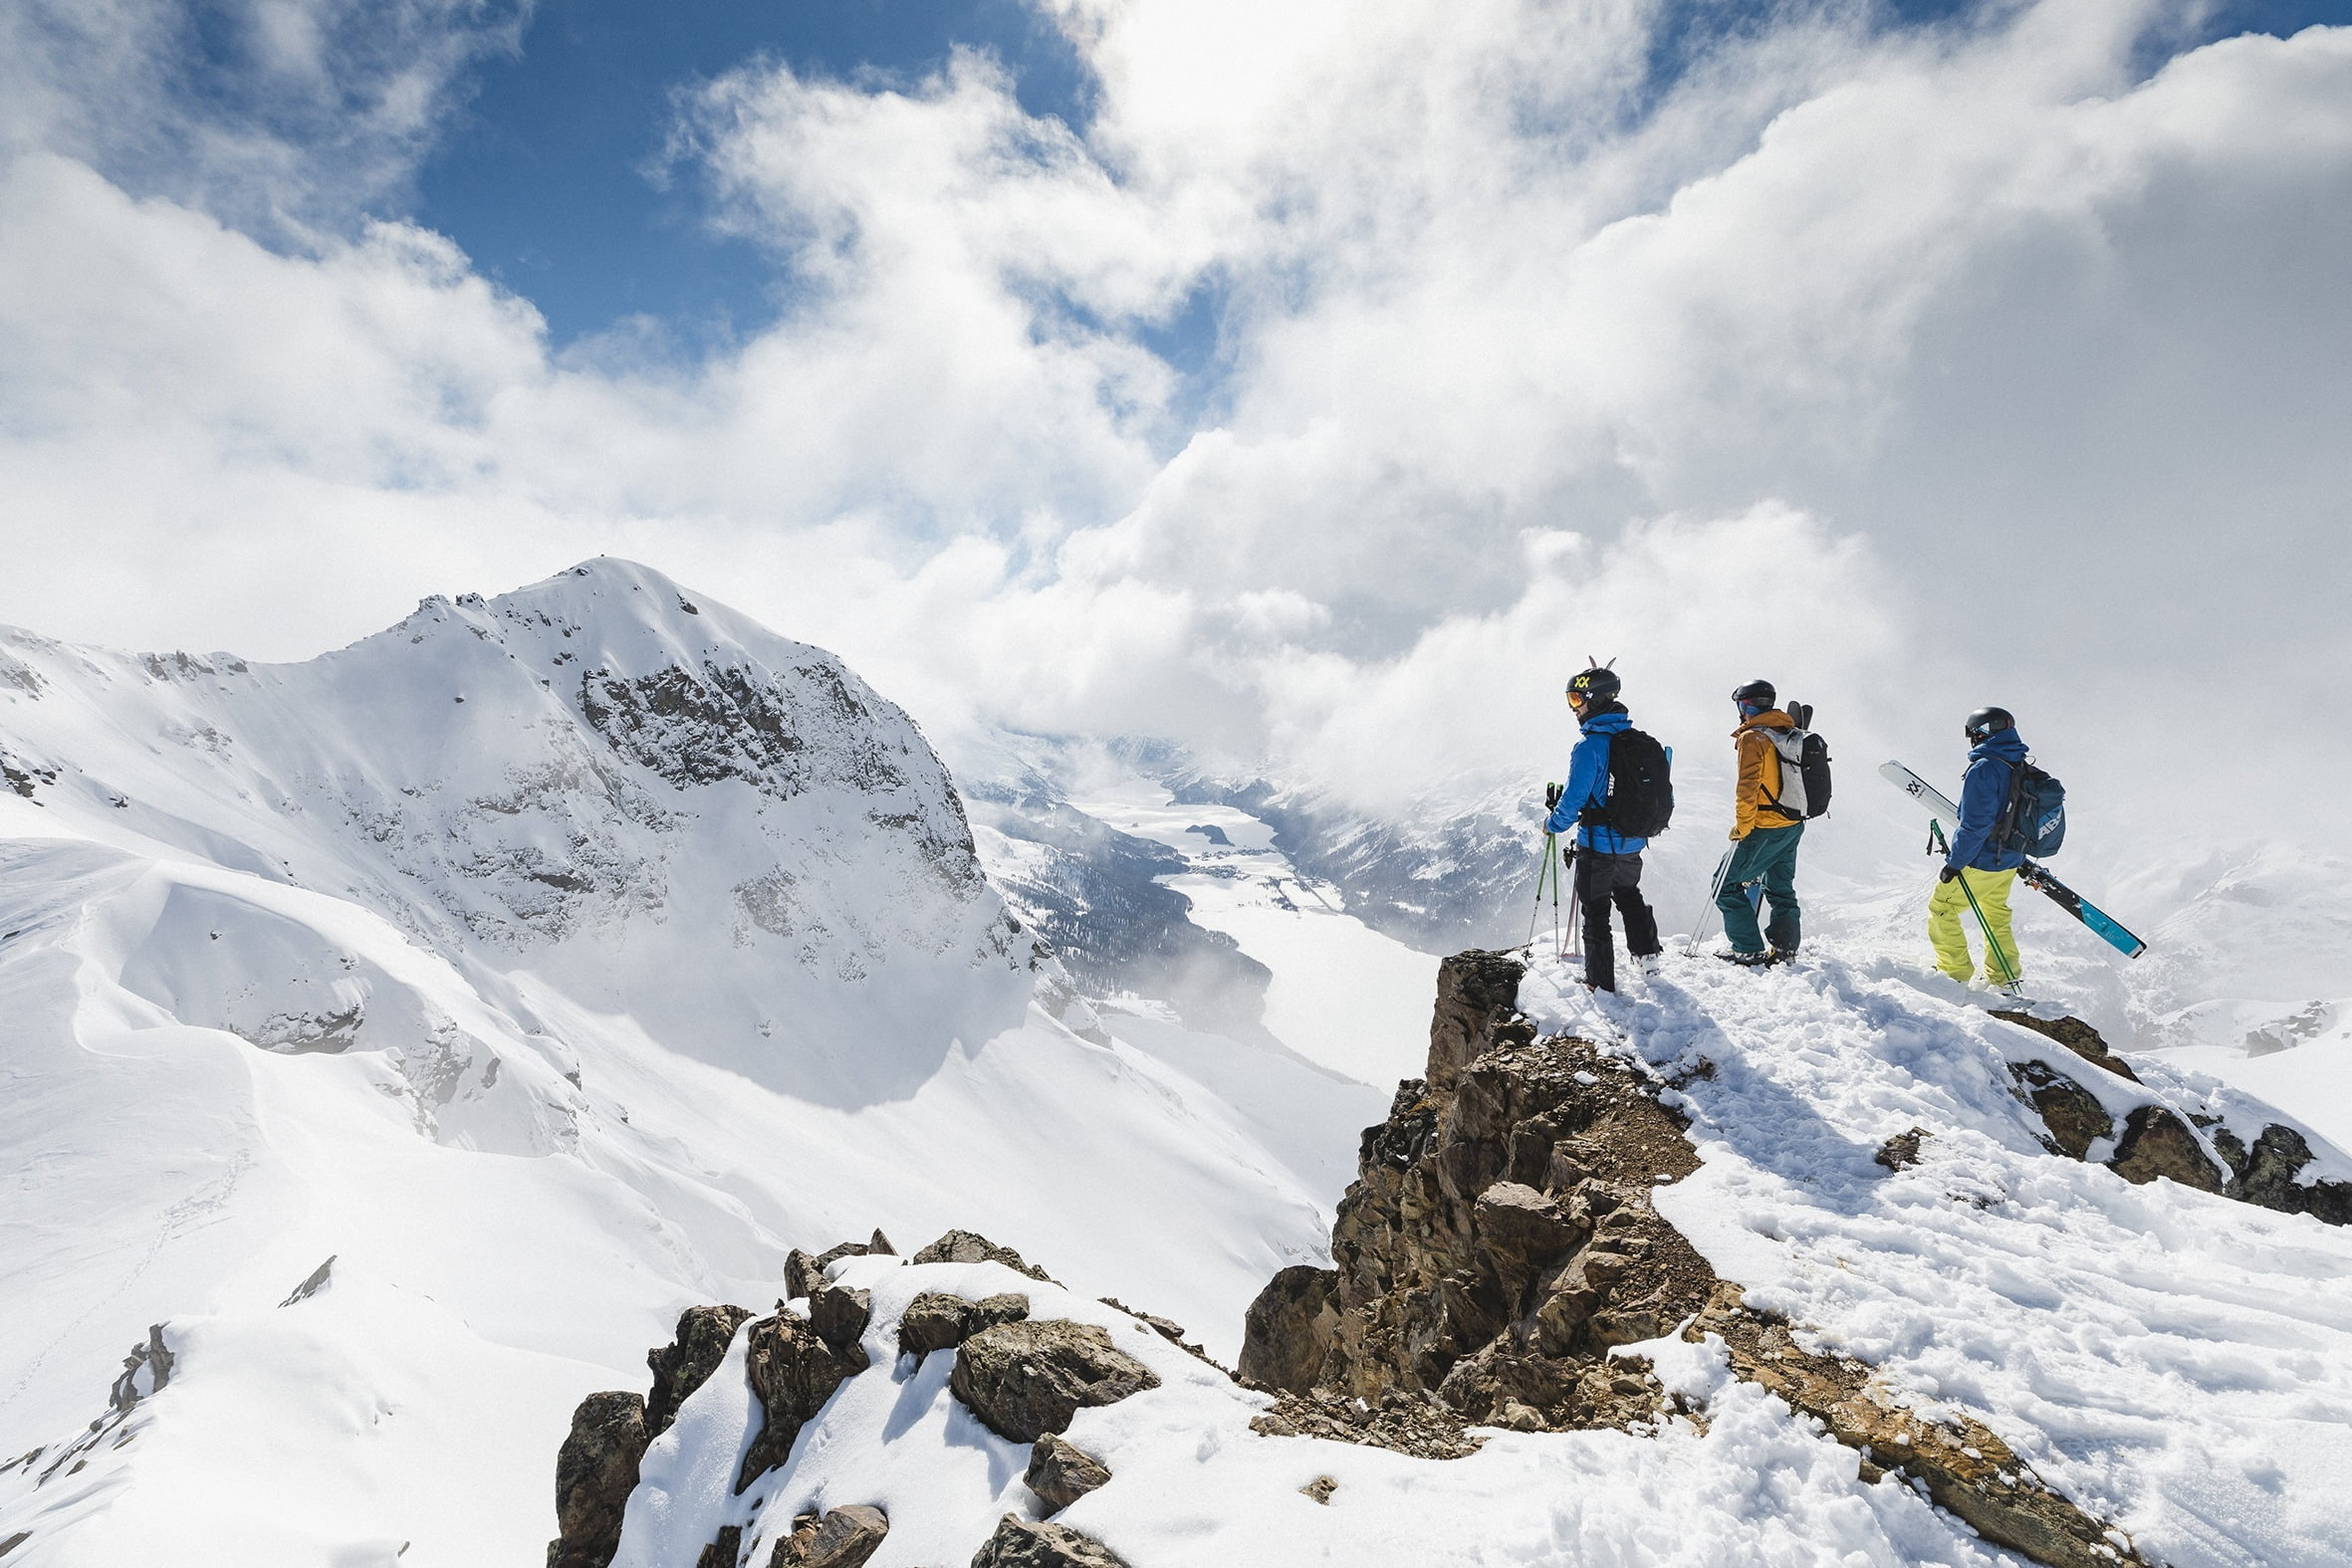 Ski tours & mountaineering